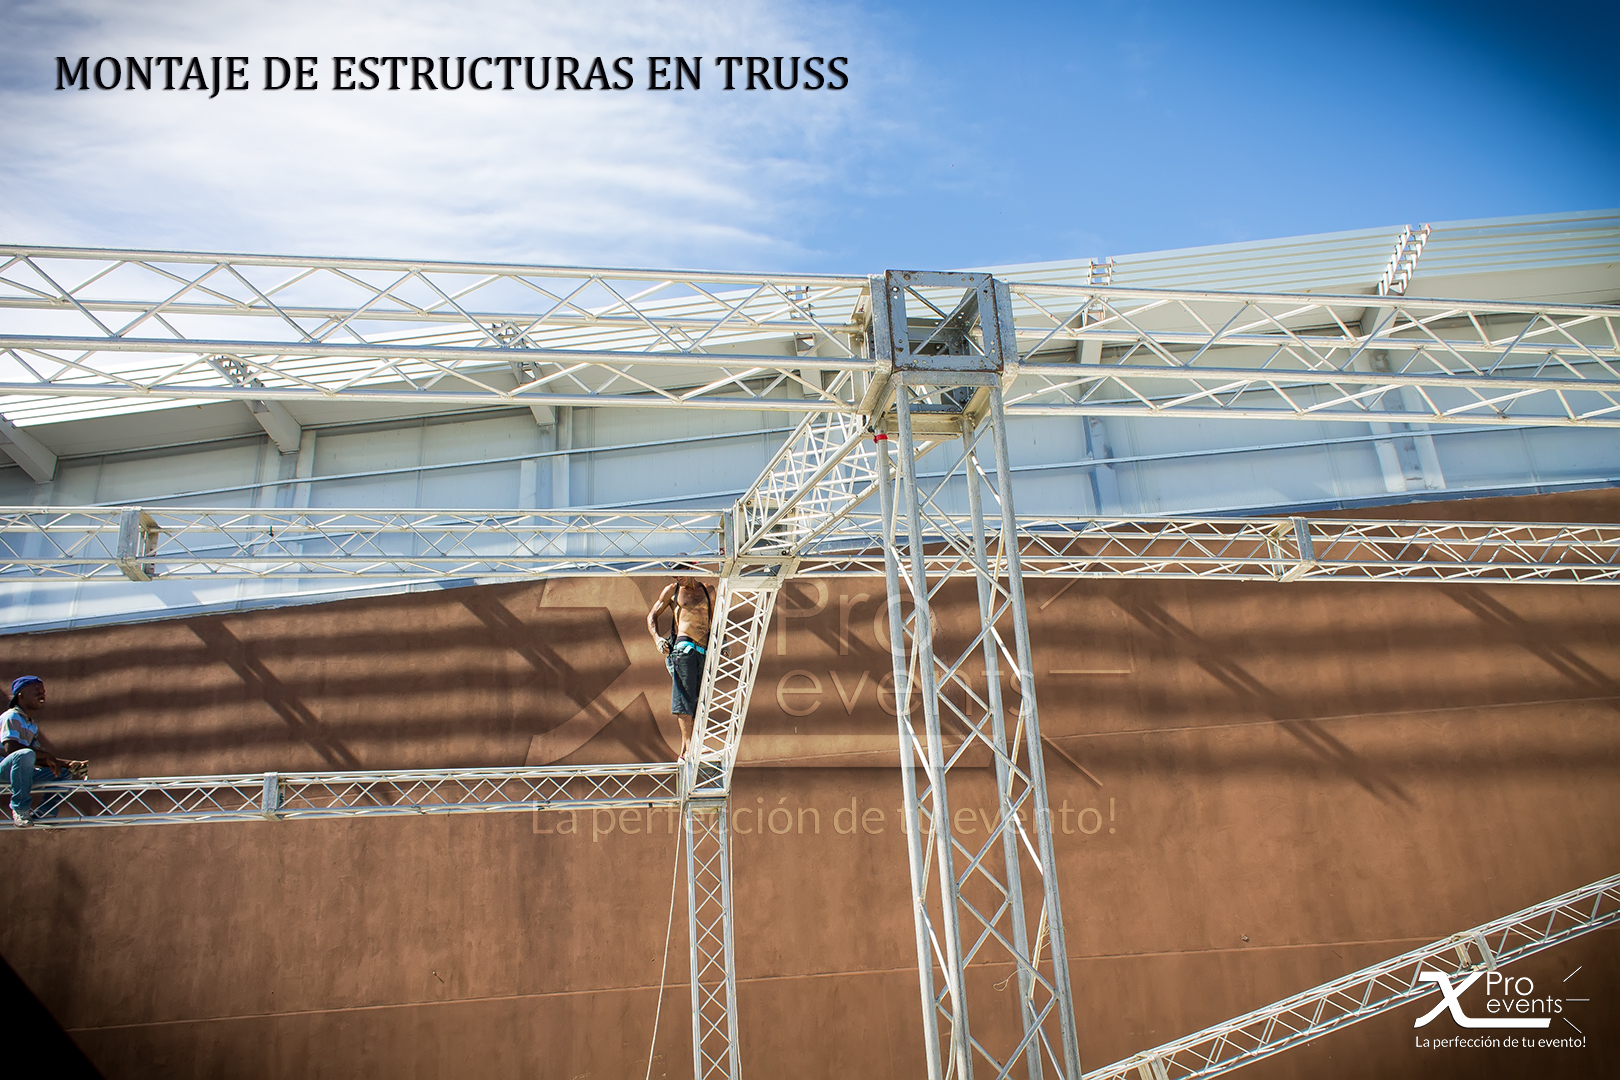 X Pro events - Renta de truss para eventos 809-846-3784